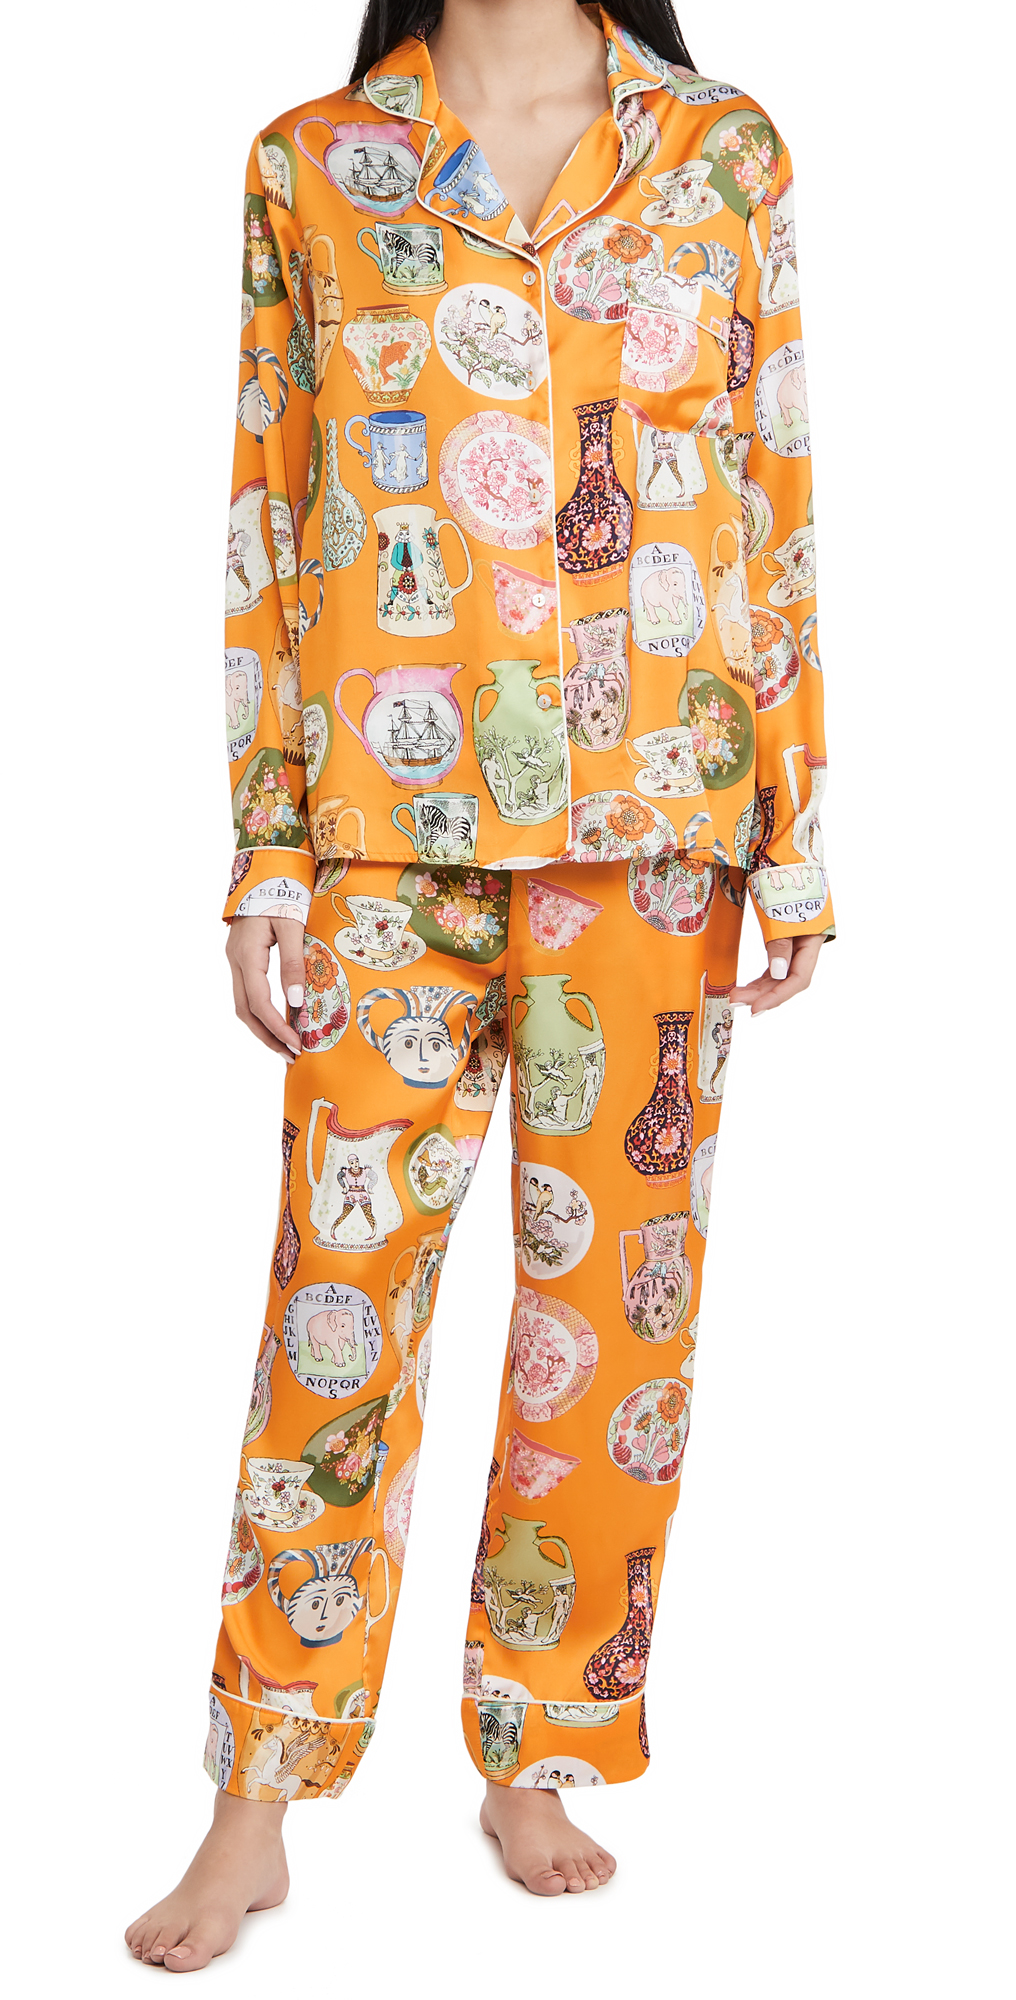 Karen Mabon Ceramics Orange Long Pajama Set